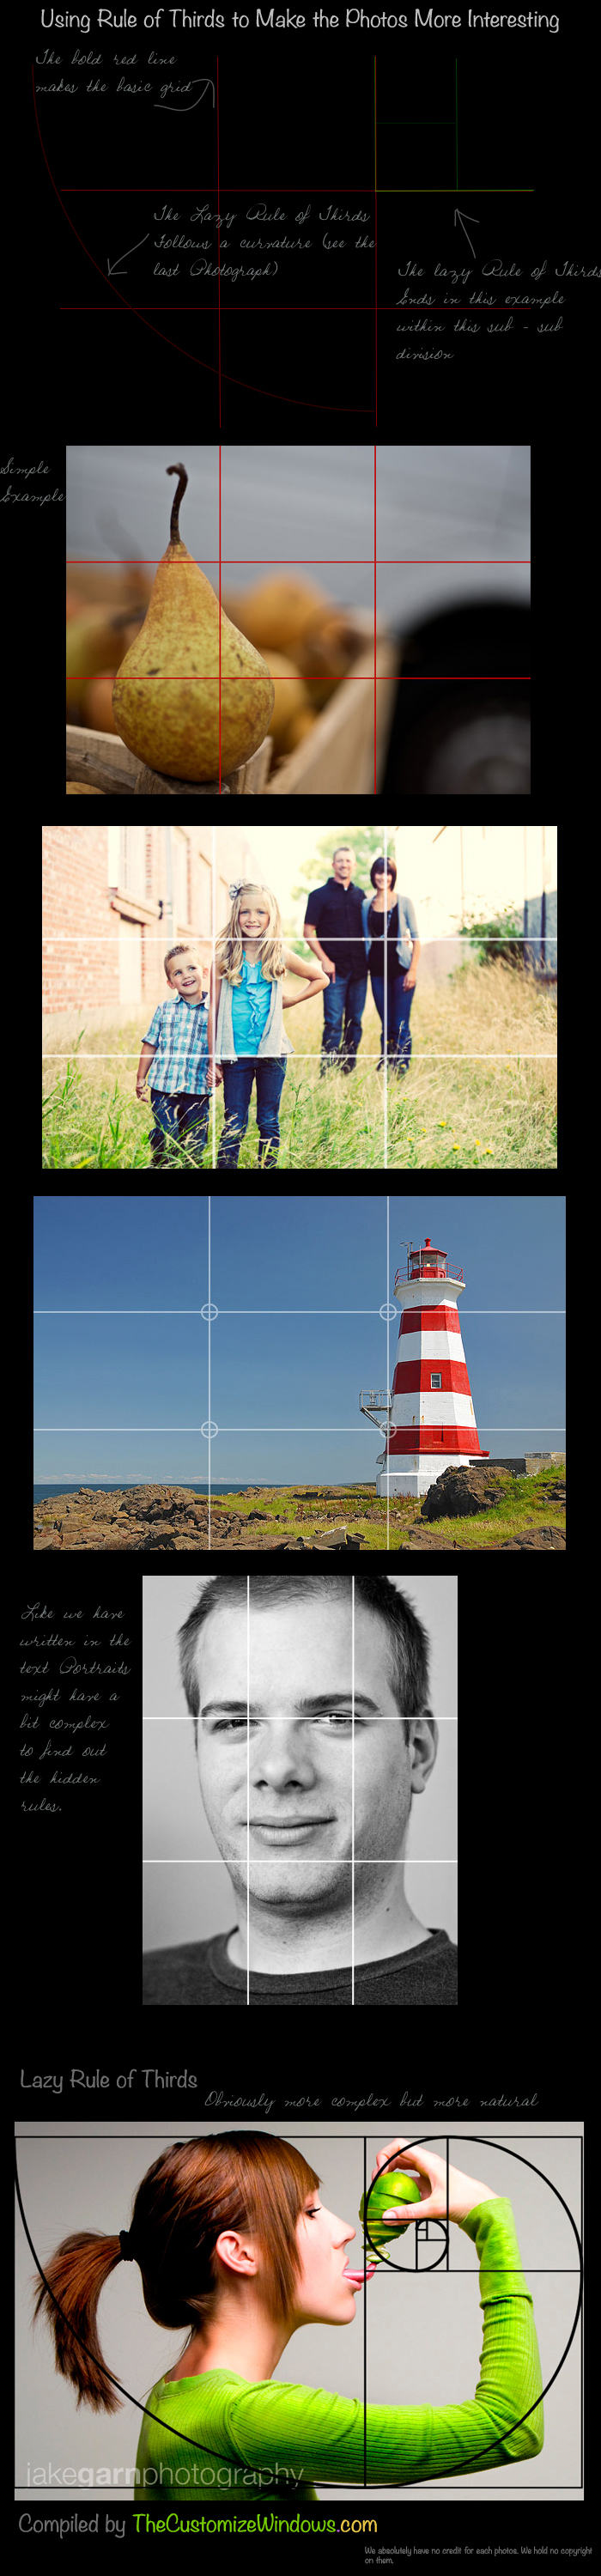 Using-Rule-of-Thirds-to-Make-the-Photos-More-Interesting